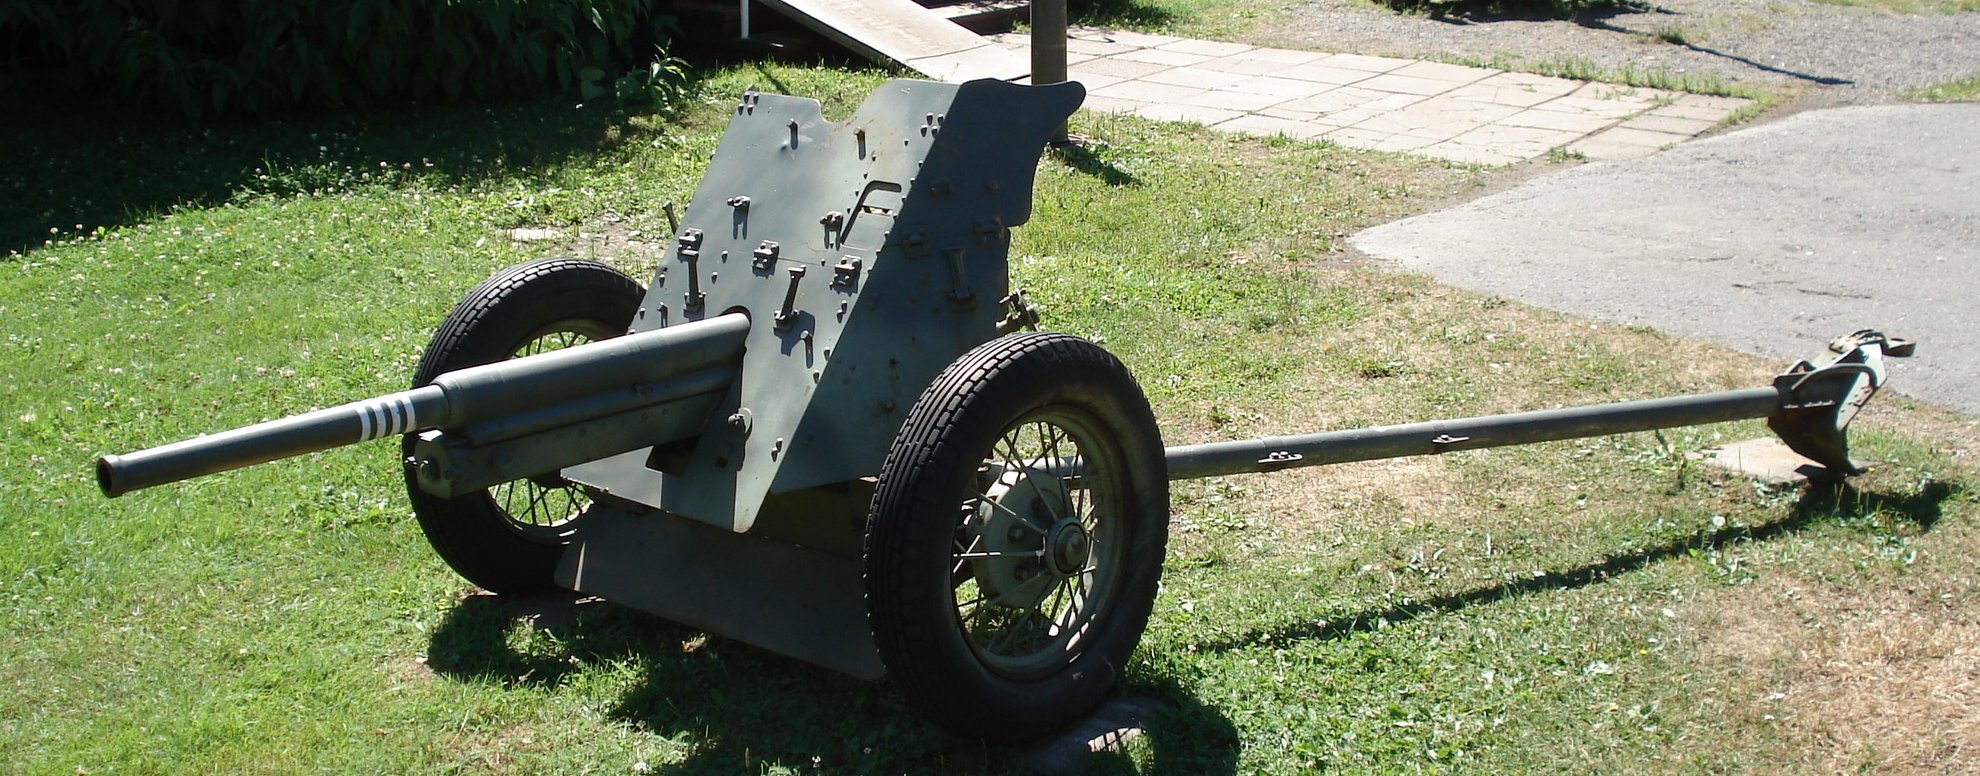 German 50 Mm Anti Tank Gun: File:Anti-tank Gun 45mm M1937 Parola 6.jpg